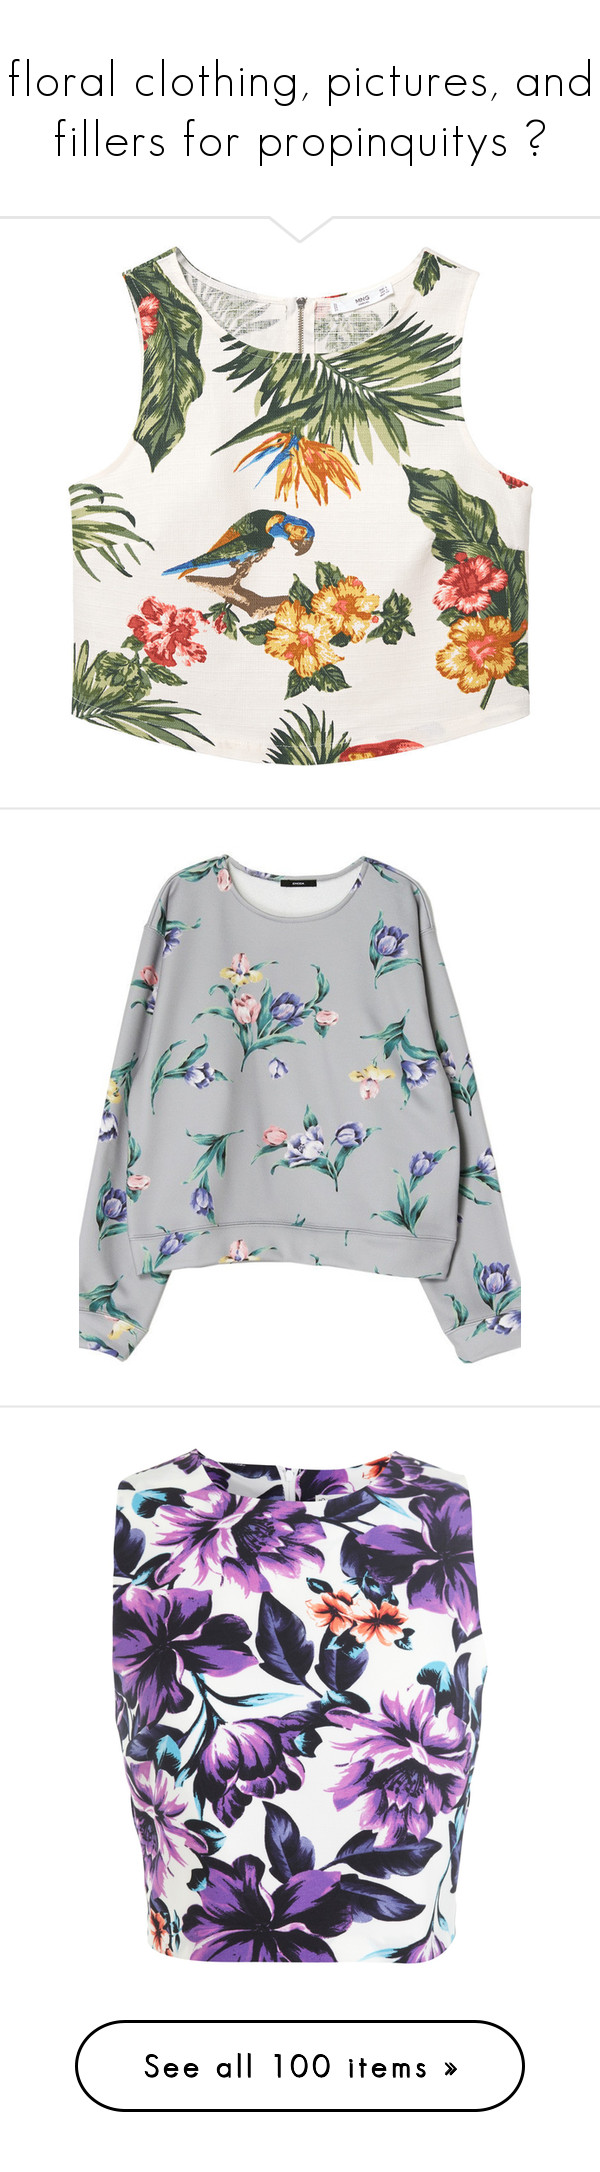 """floral clothing, pictures, and fillers for propinquitys ♡"" by adal1ne ❤ liked on Polyvore featuring tops, crop tops, shirts, blusas, zipper crop top, zip top, zipper top, zip crop top, mango shirts and sweaters"